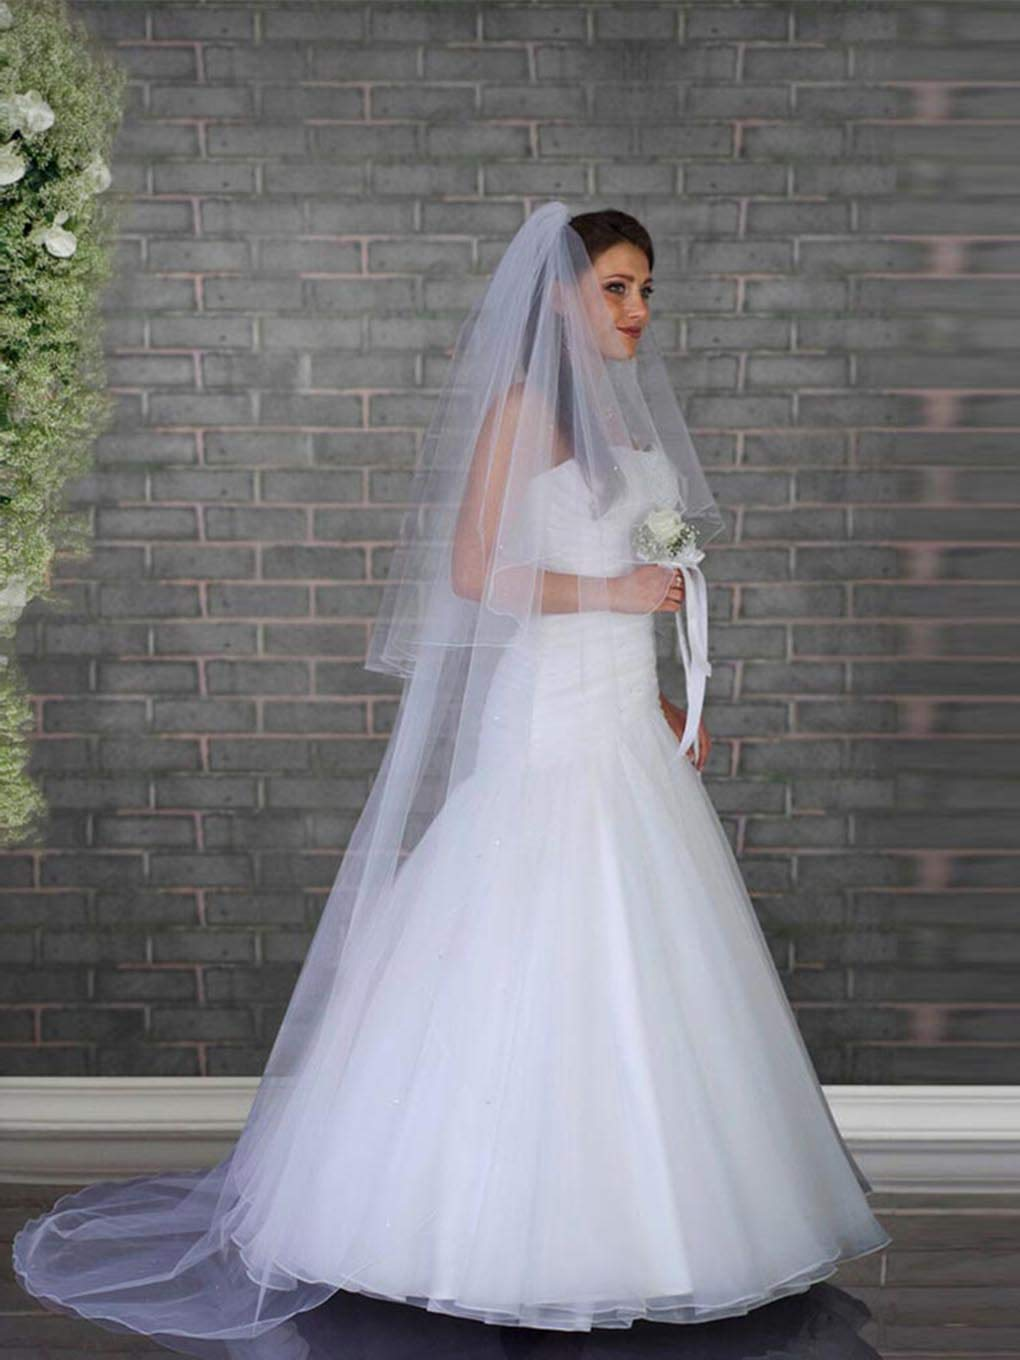 Ursumy Long Wedding Veil Bridal Cathedral Length Veil 2 Tier Soft Tulle Bridemaid Veils with Comb 118